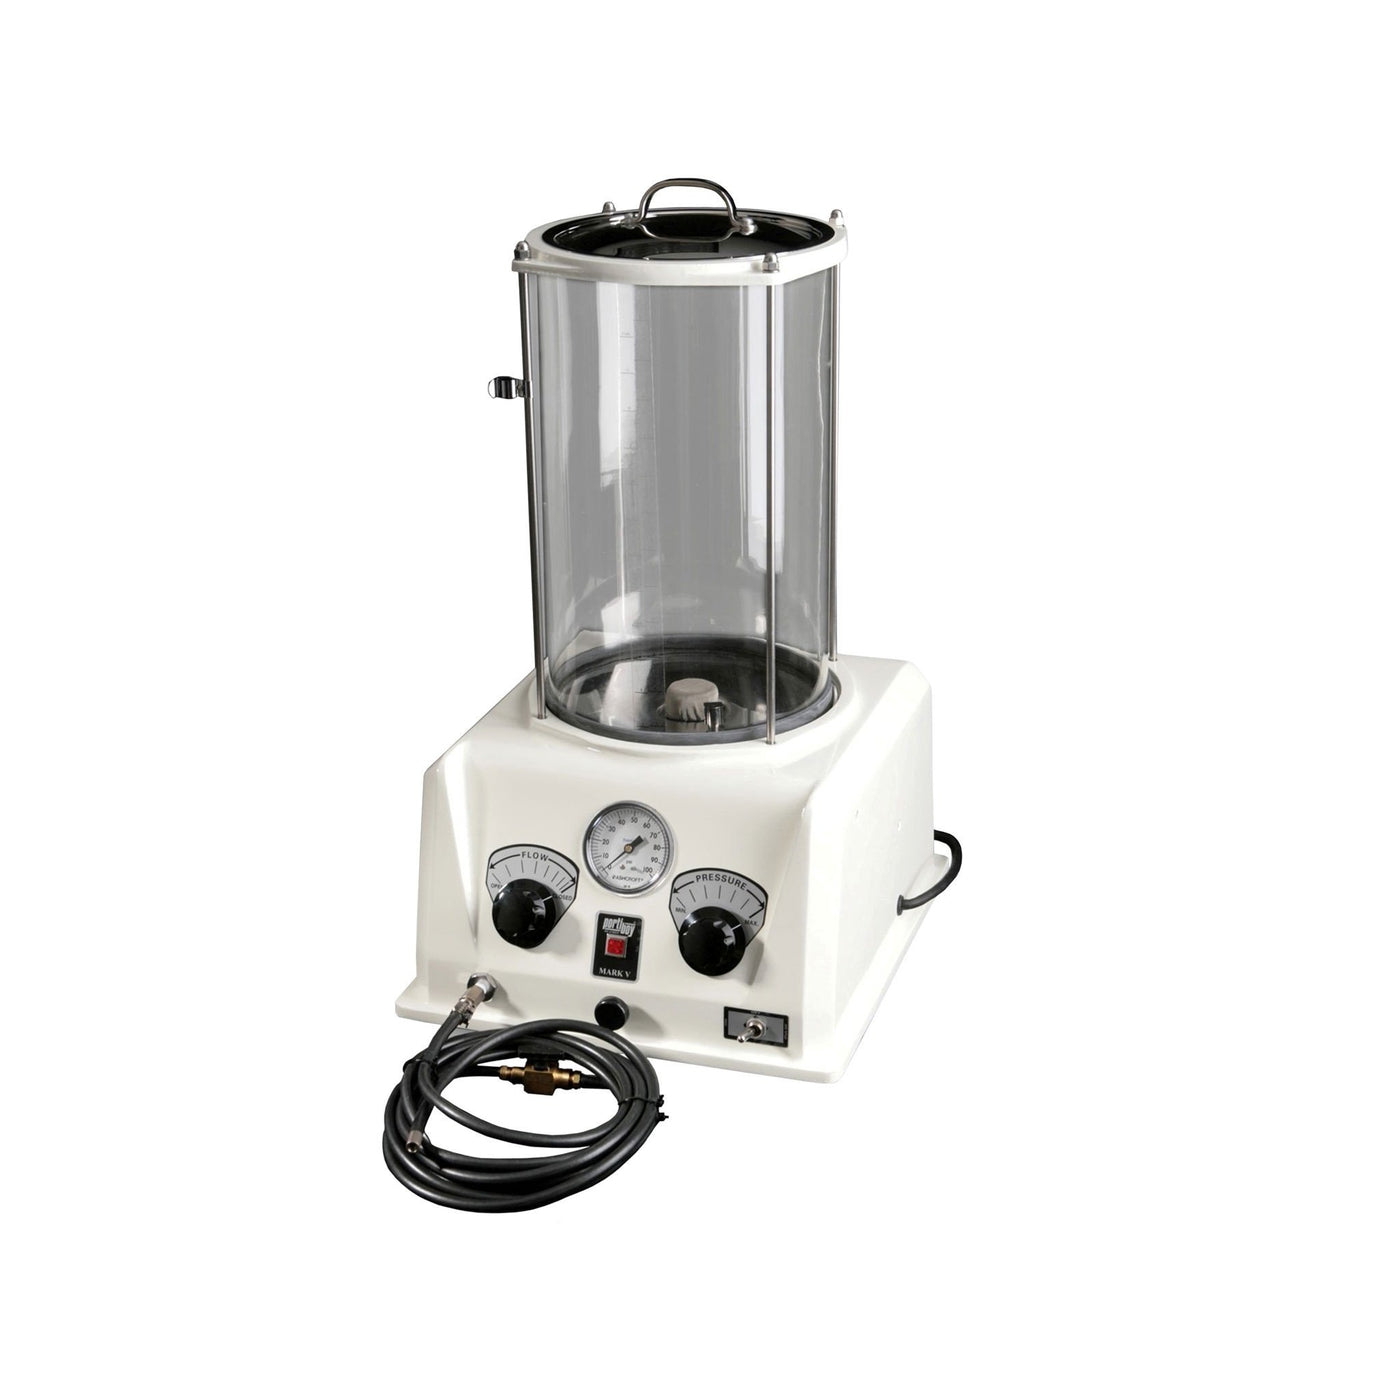 Embalming Machines-Laboratory Accessory-Mortech Manufacturing Company Inc. Quality Stainless Steel Autopsy, Morgue, Funeral Home, Necropsy, Veterinary / Anatomy, Dissection Equipment and Accessories